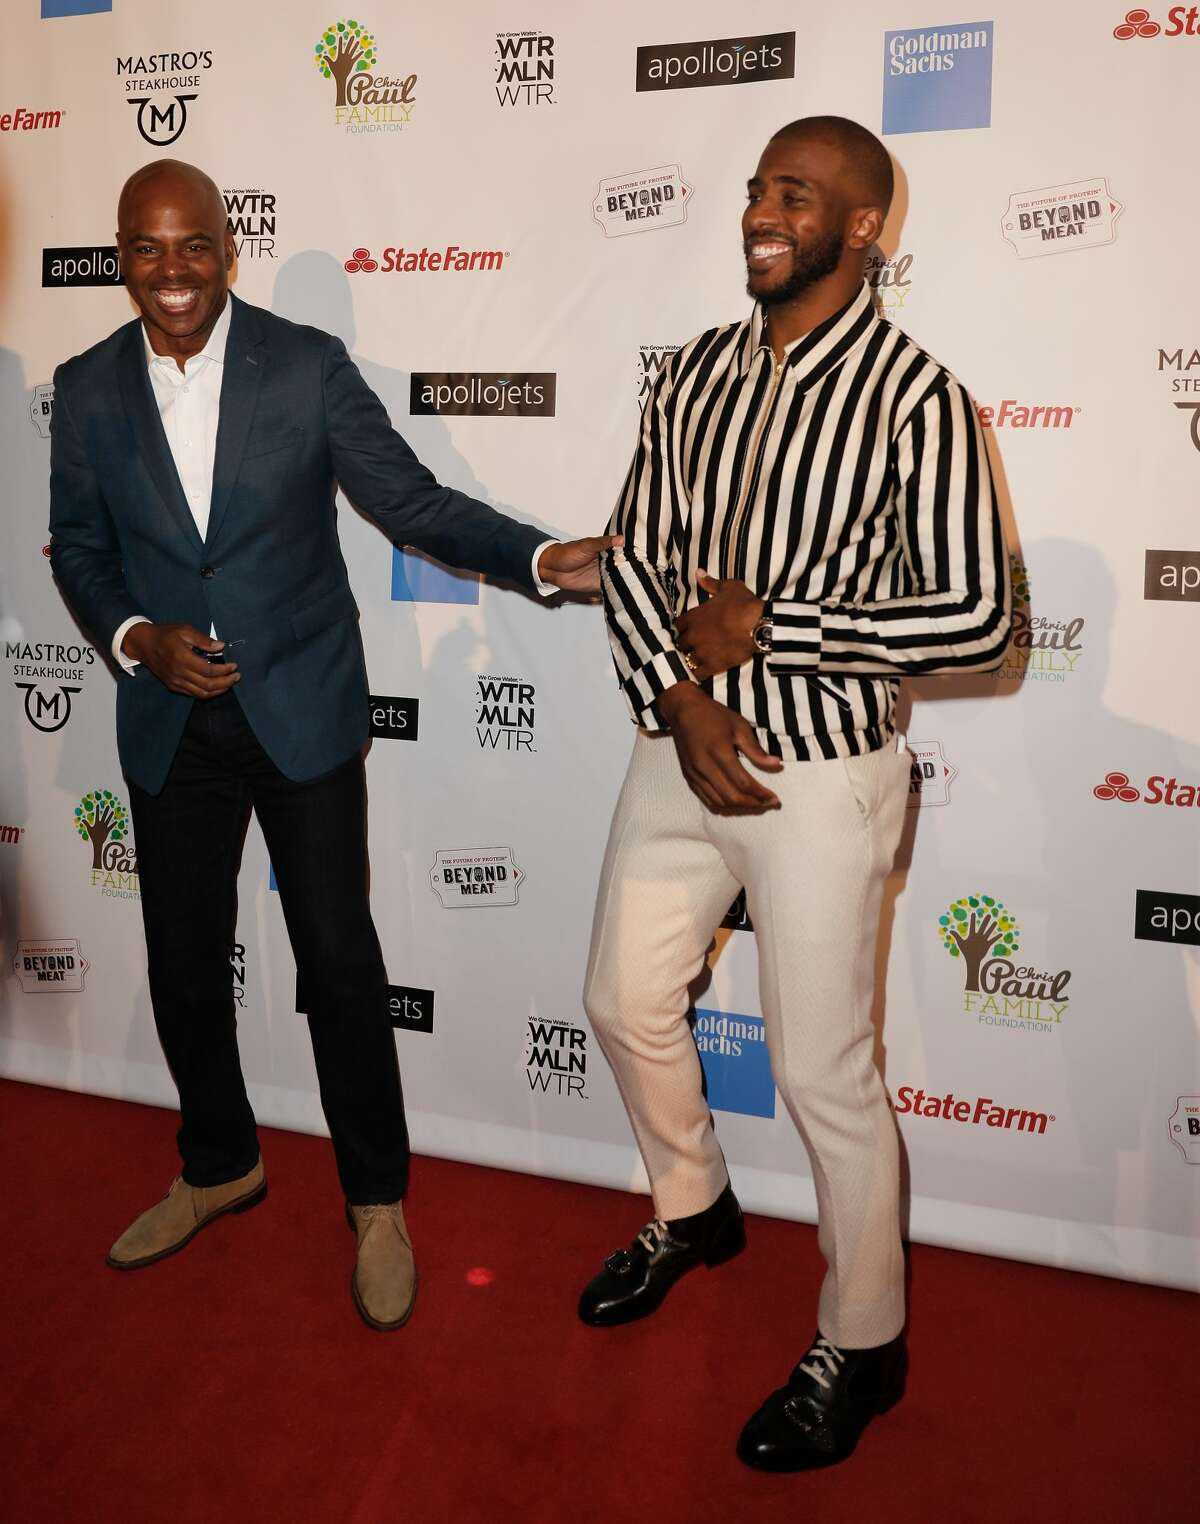 """HOUSTON, TX - OCTOBER 28: Kevin Frazier and Chris Paul at the Chris Paul Family Foundation's """"Celebrity Server"""" Fundraiser at Mastro's Steakhouse on October 28, 2018 in Houston, Texas. (Photo by Bob Levey/Getty Images)"""